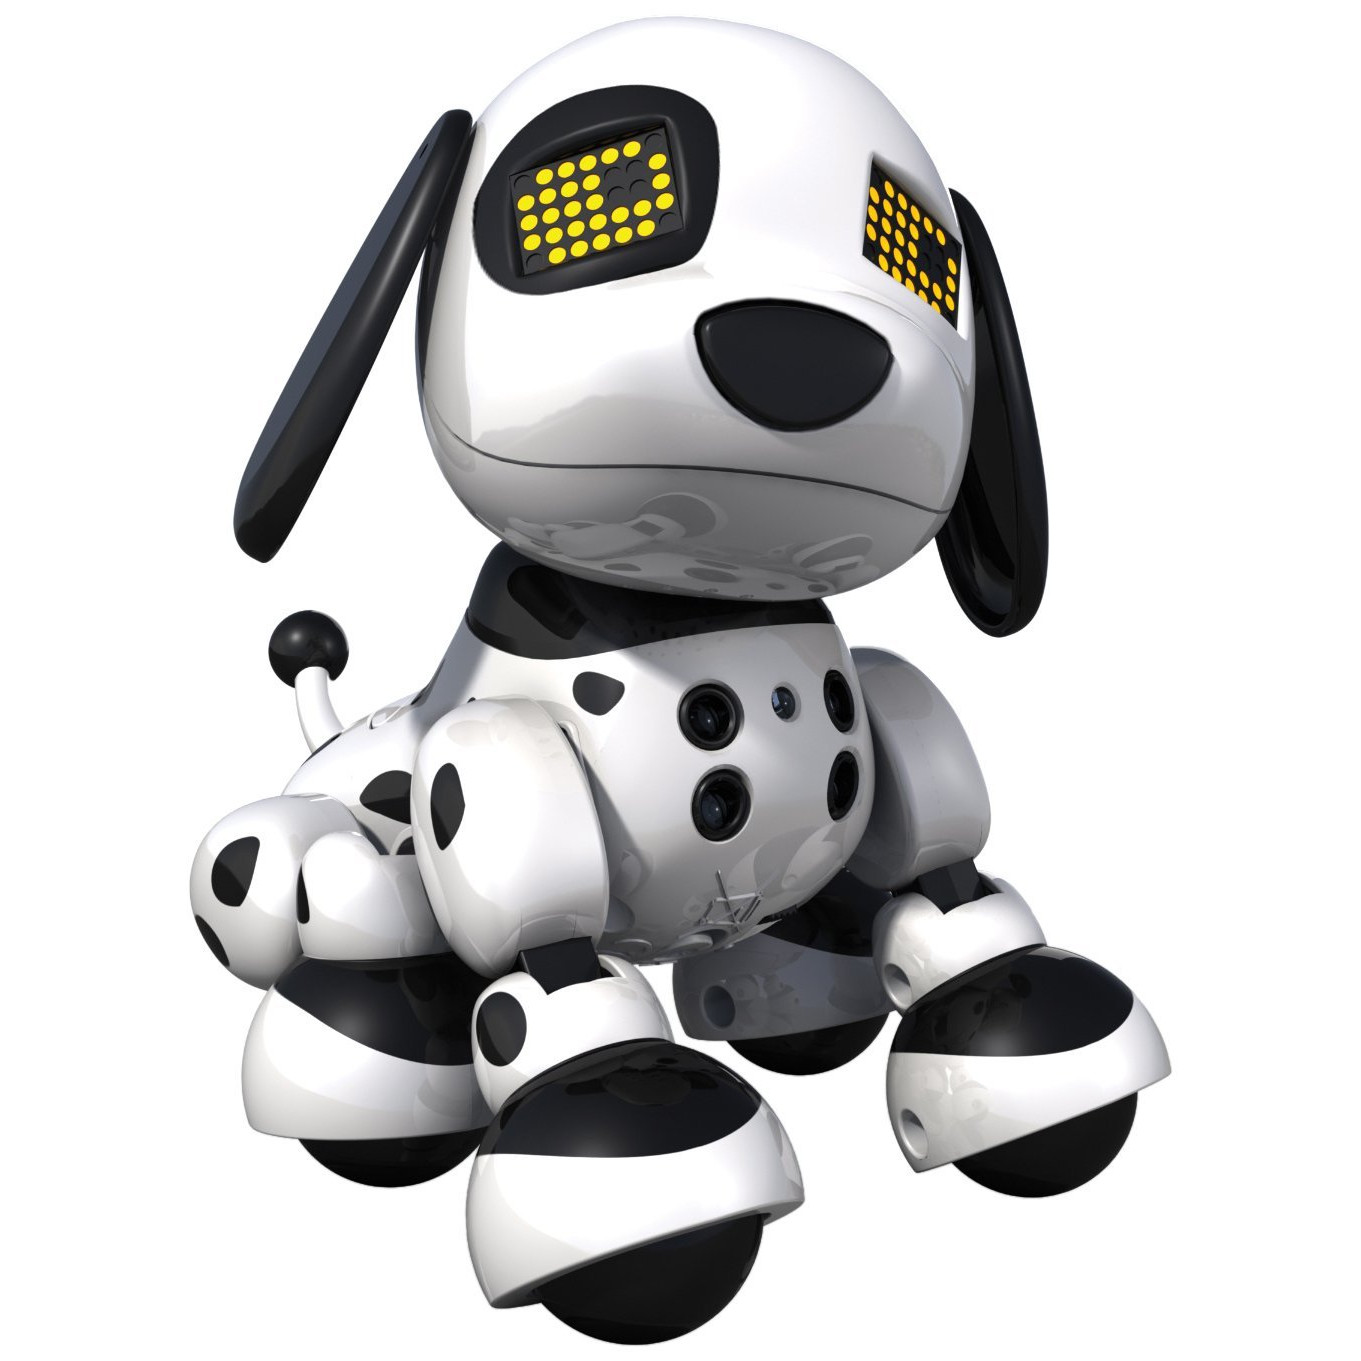 Picture Of A Robot Dog